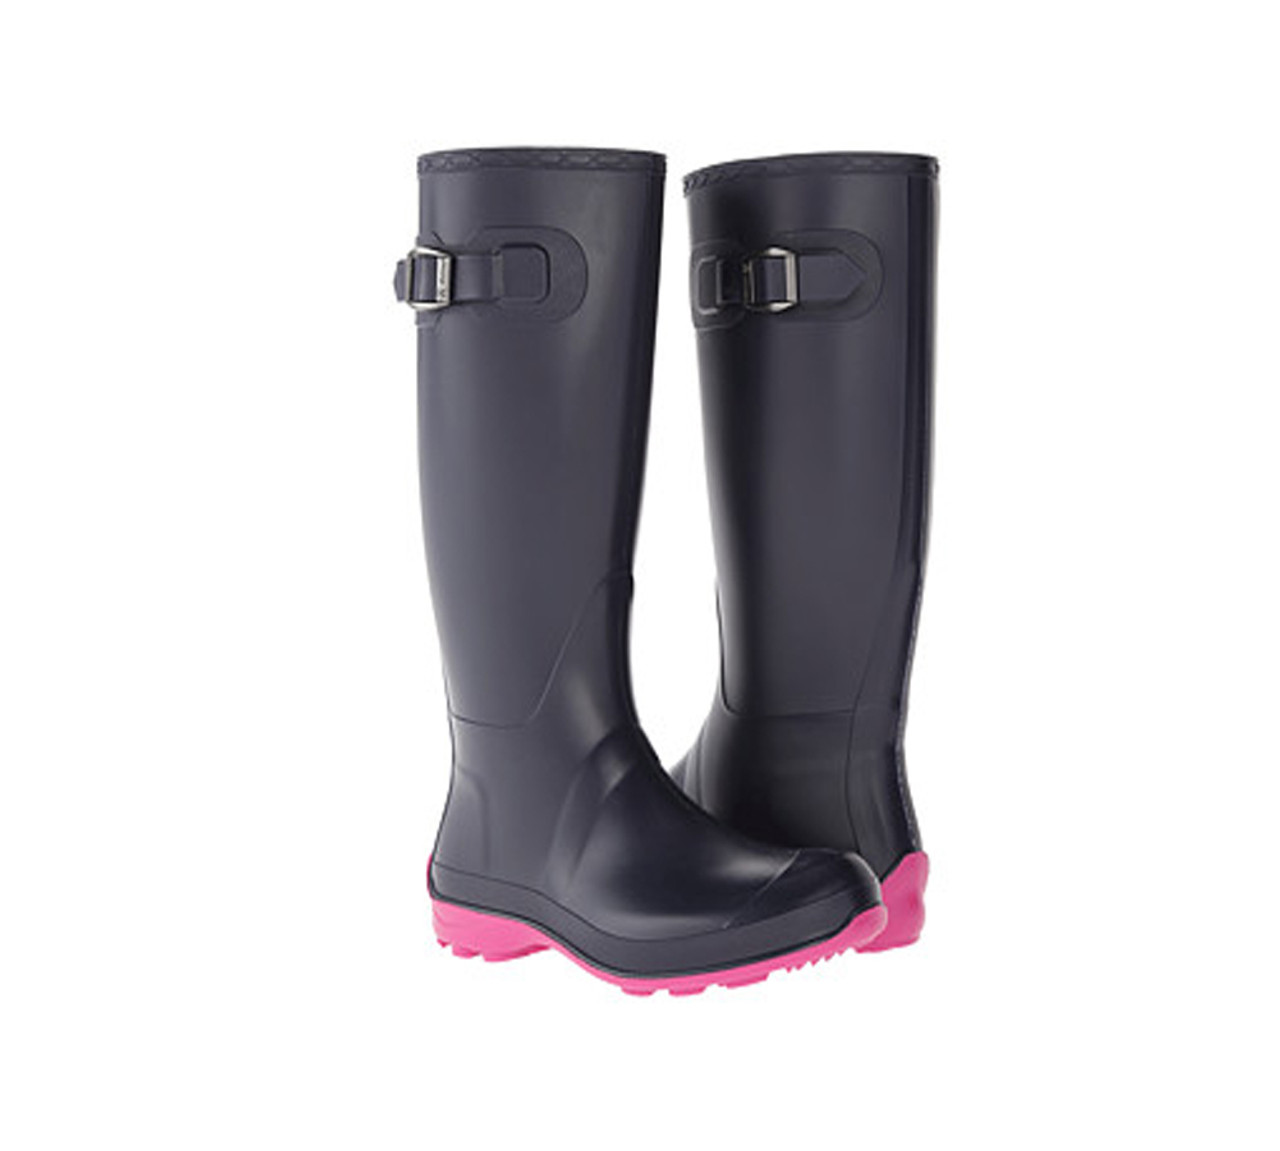 d520f1c906f7 Kamik Women s Olivia Rain Boots Navy - Shop now   Shoolu.com